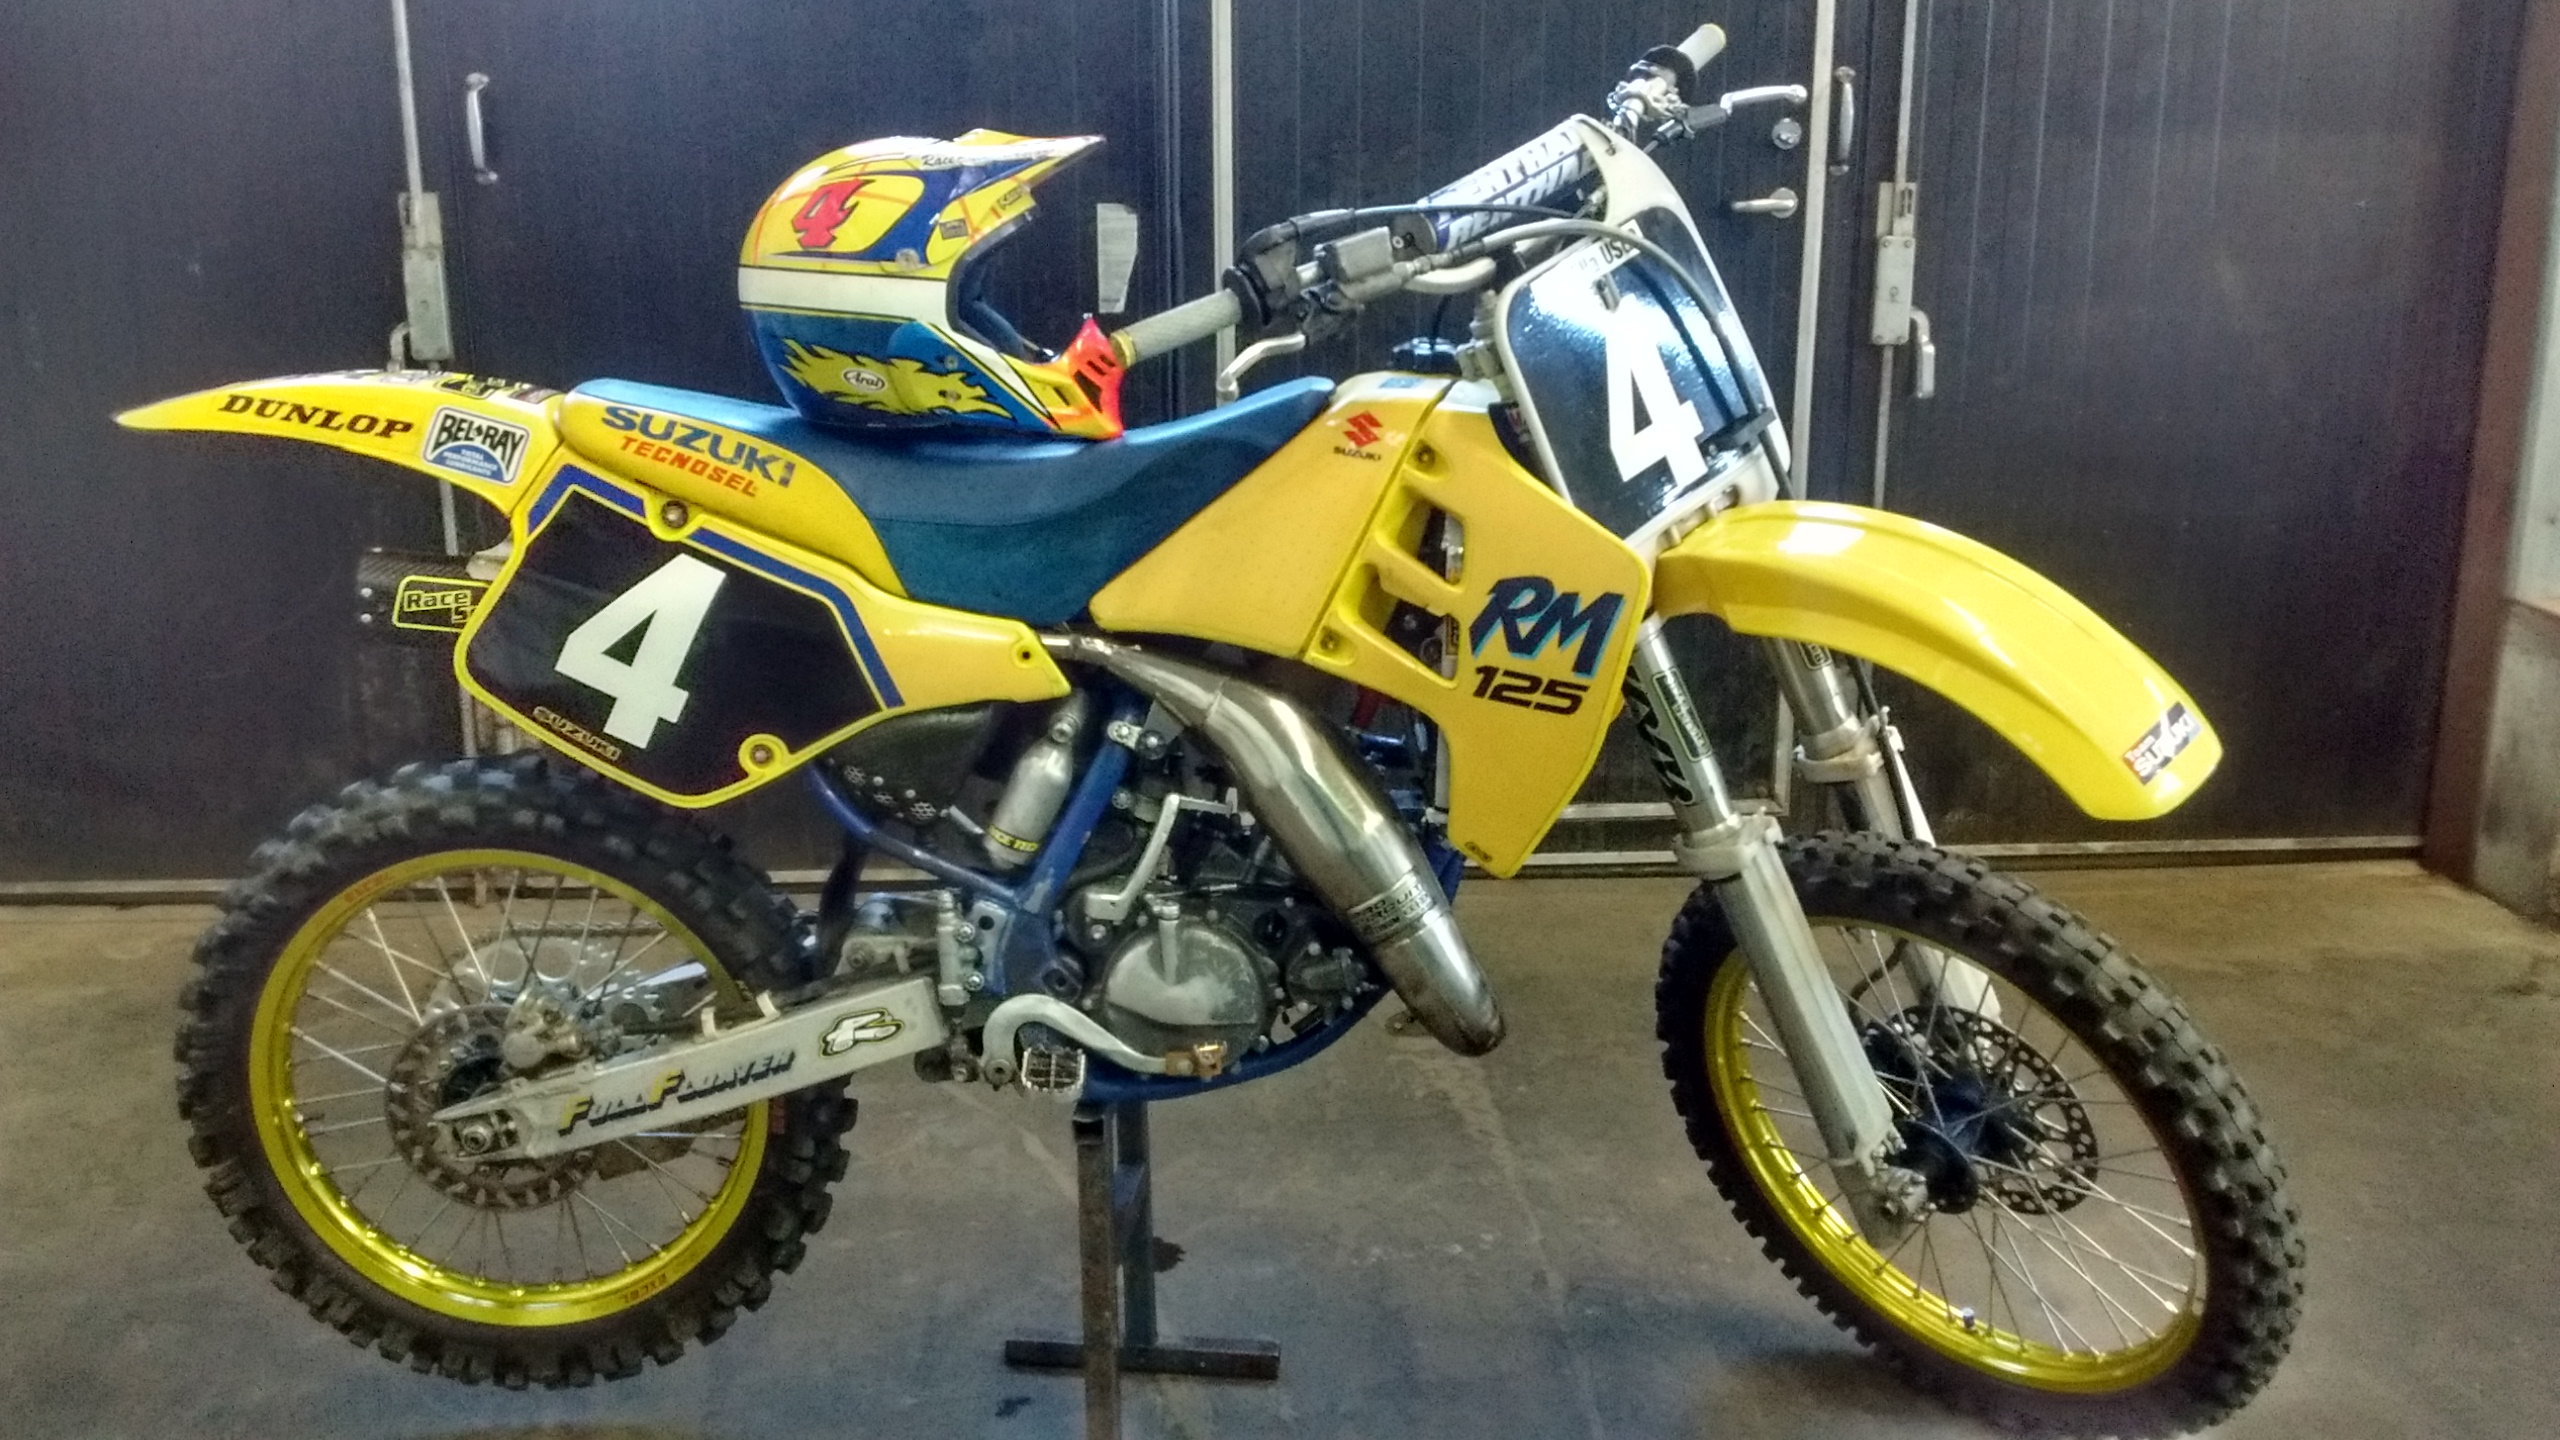 raceservice suzuki rm 125 1990 evo raceservice 39 s bike check vital mx. Black Bedroom Furniture Sets. Home Design Ideas